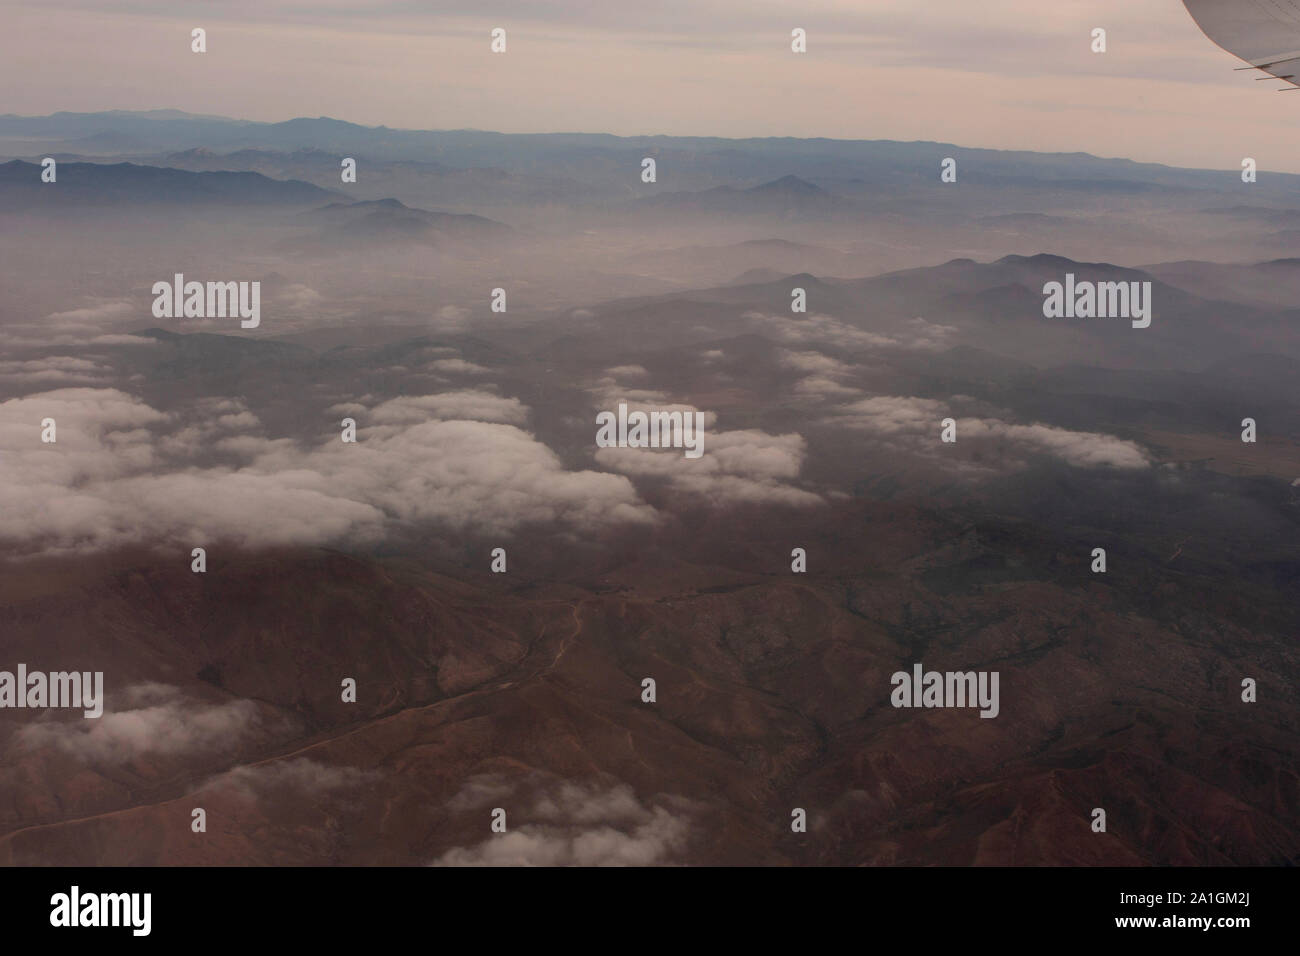 Landscape Aerial shot of mountain chain clouds and Mexican land approaching Tijuana Mexico Stock Photo